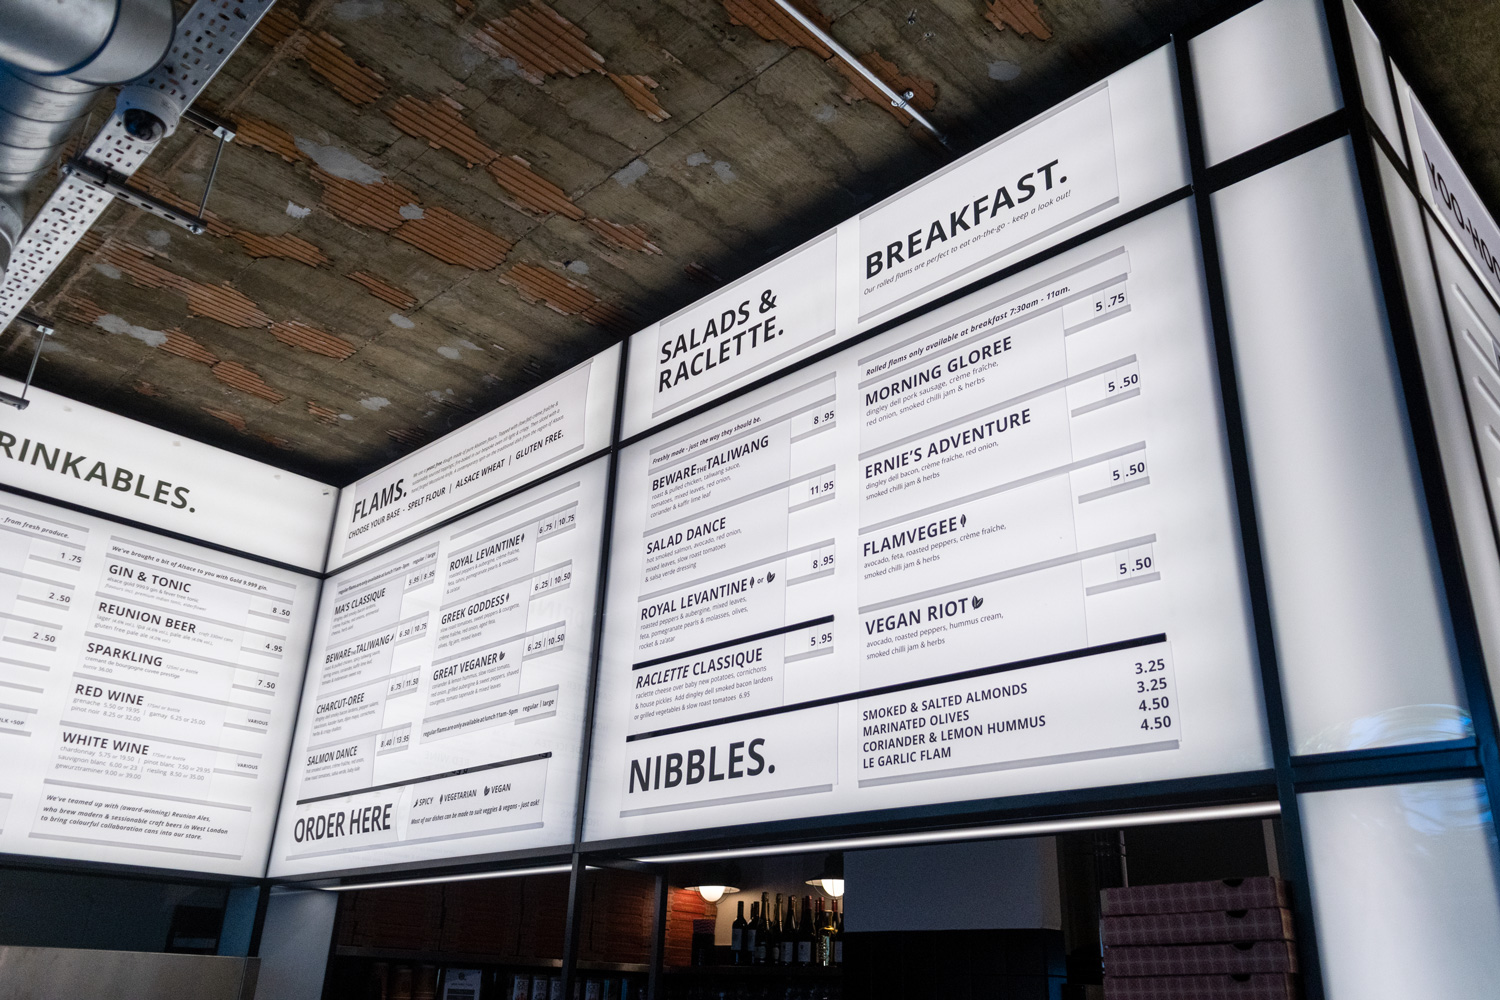 Interior shot of a restaurants black and white internally illuminated menu box with runners showing the menu items in Flamboree, designed by SAINT Design.